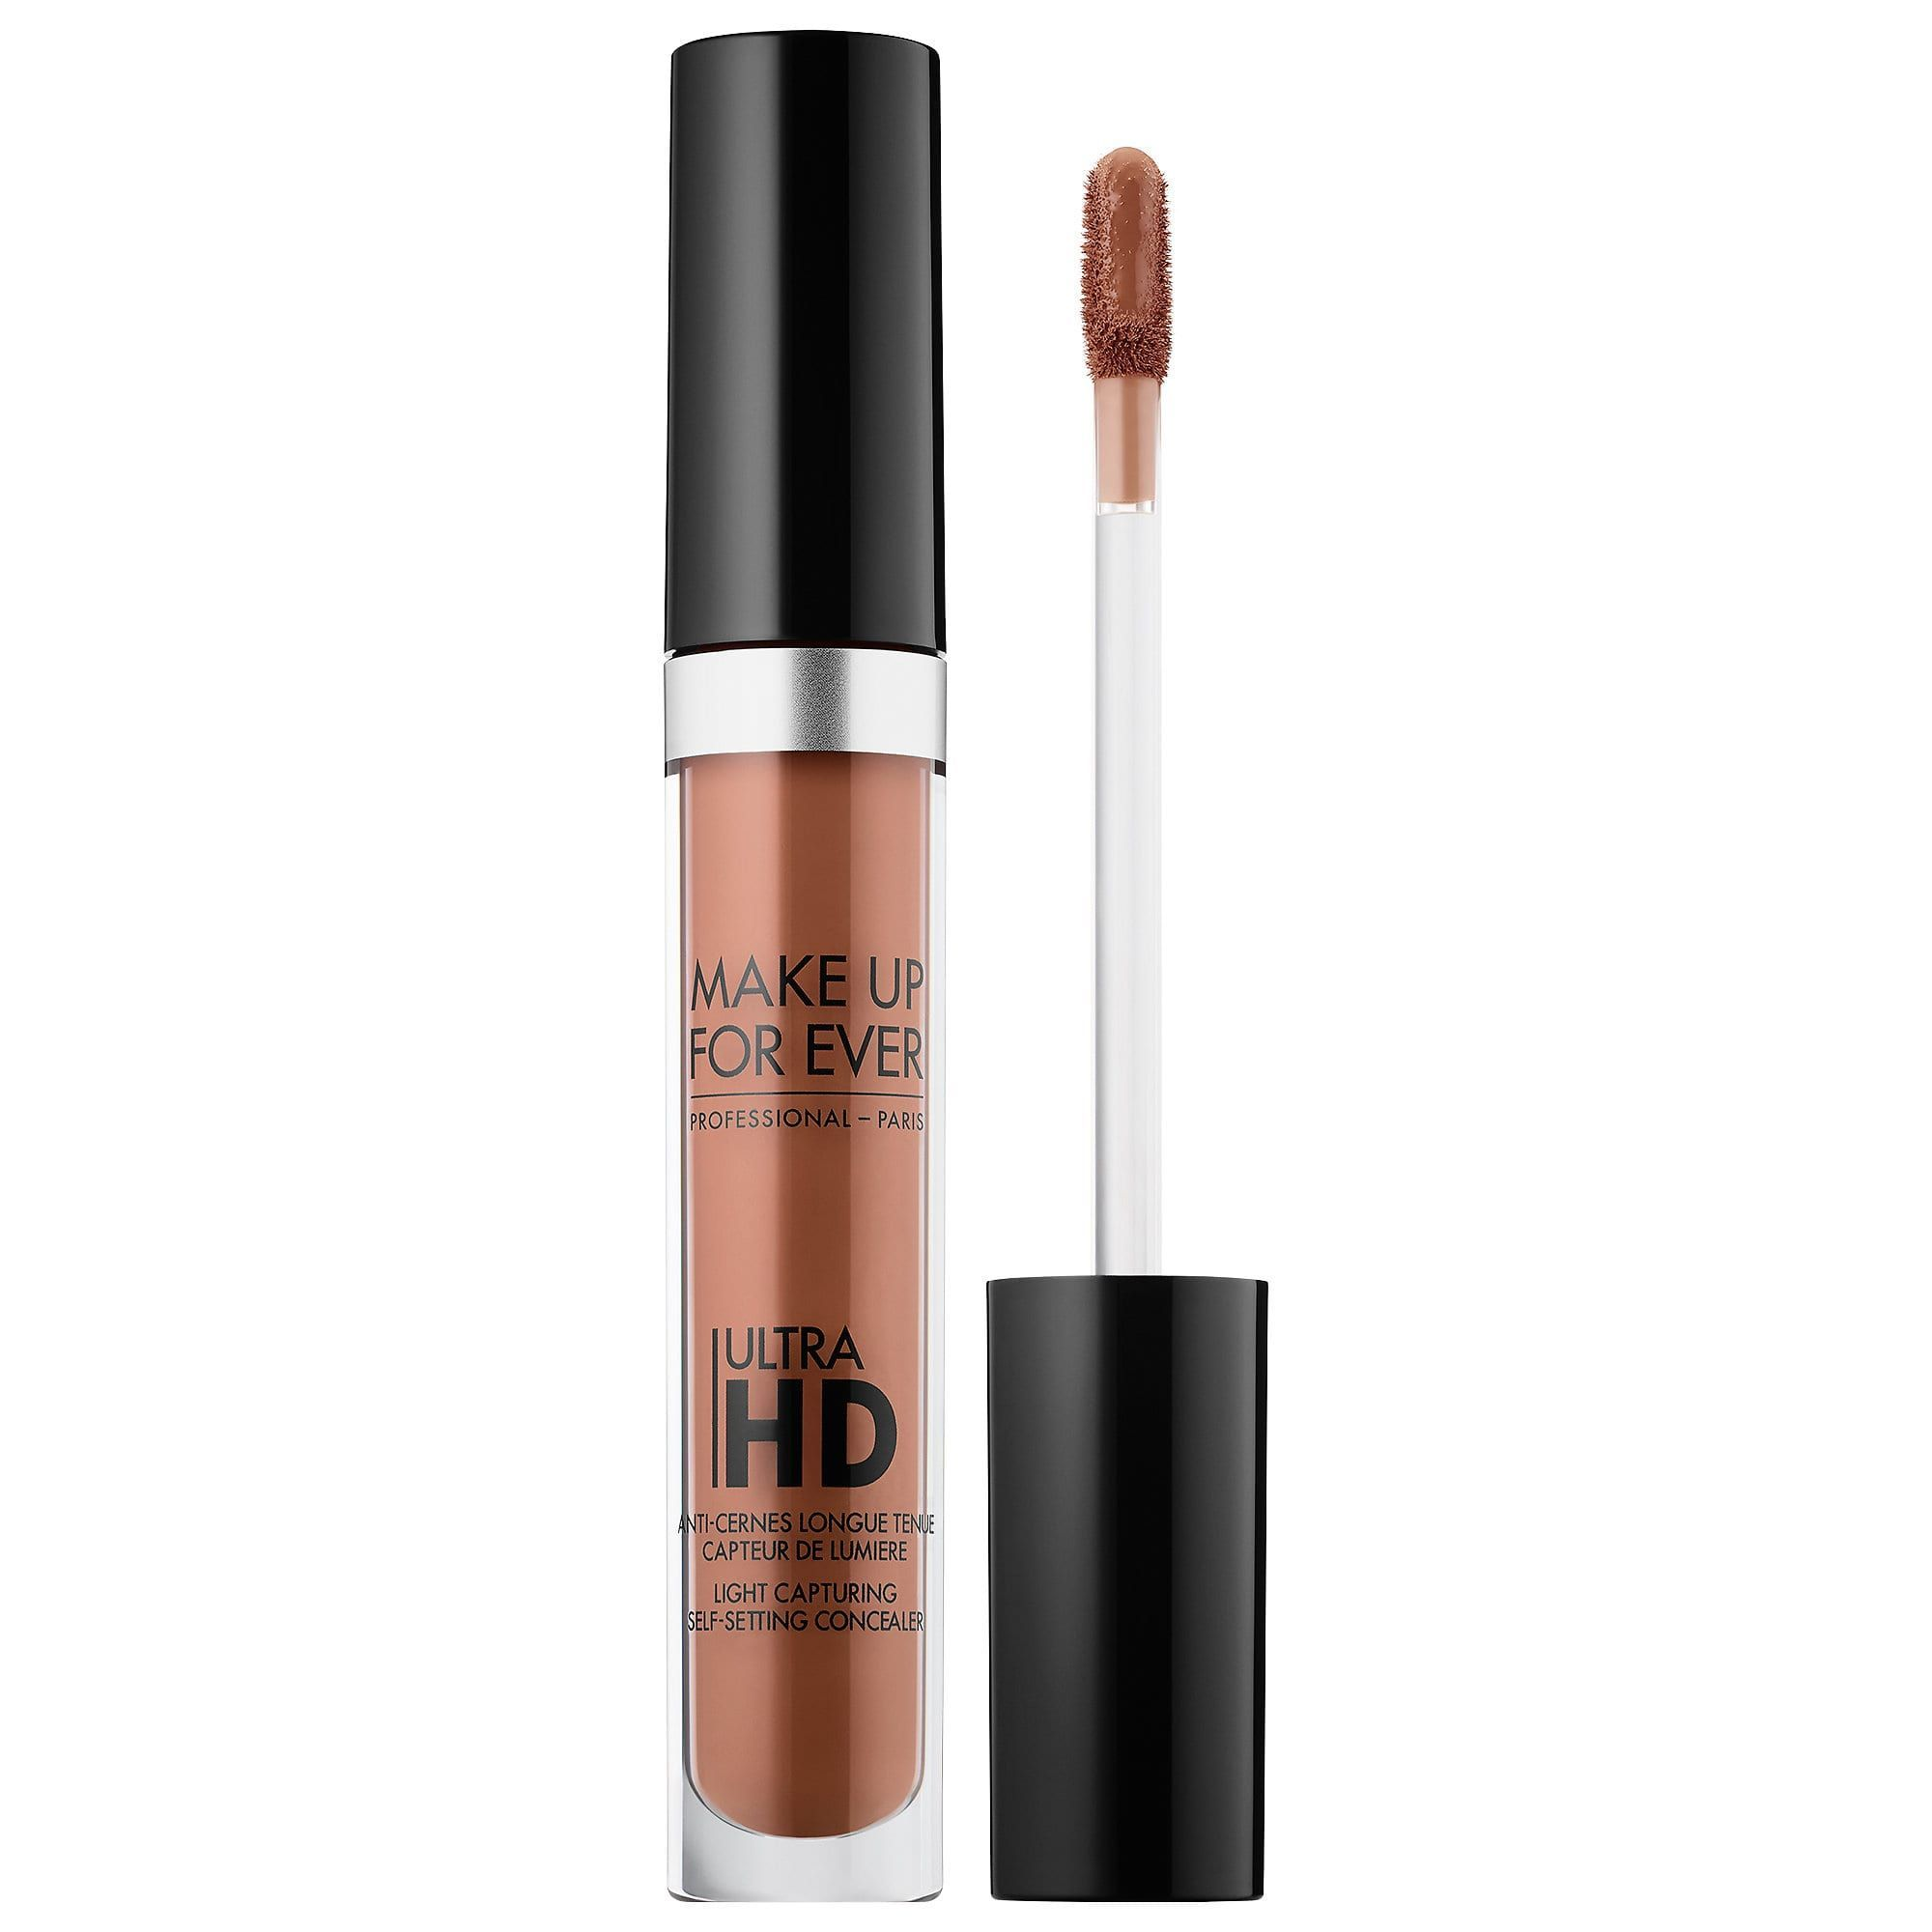 MAKE UP FOR EVER Ultra HD SelfSetting Concealer in 2020